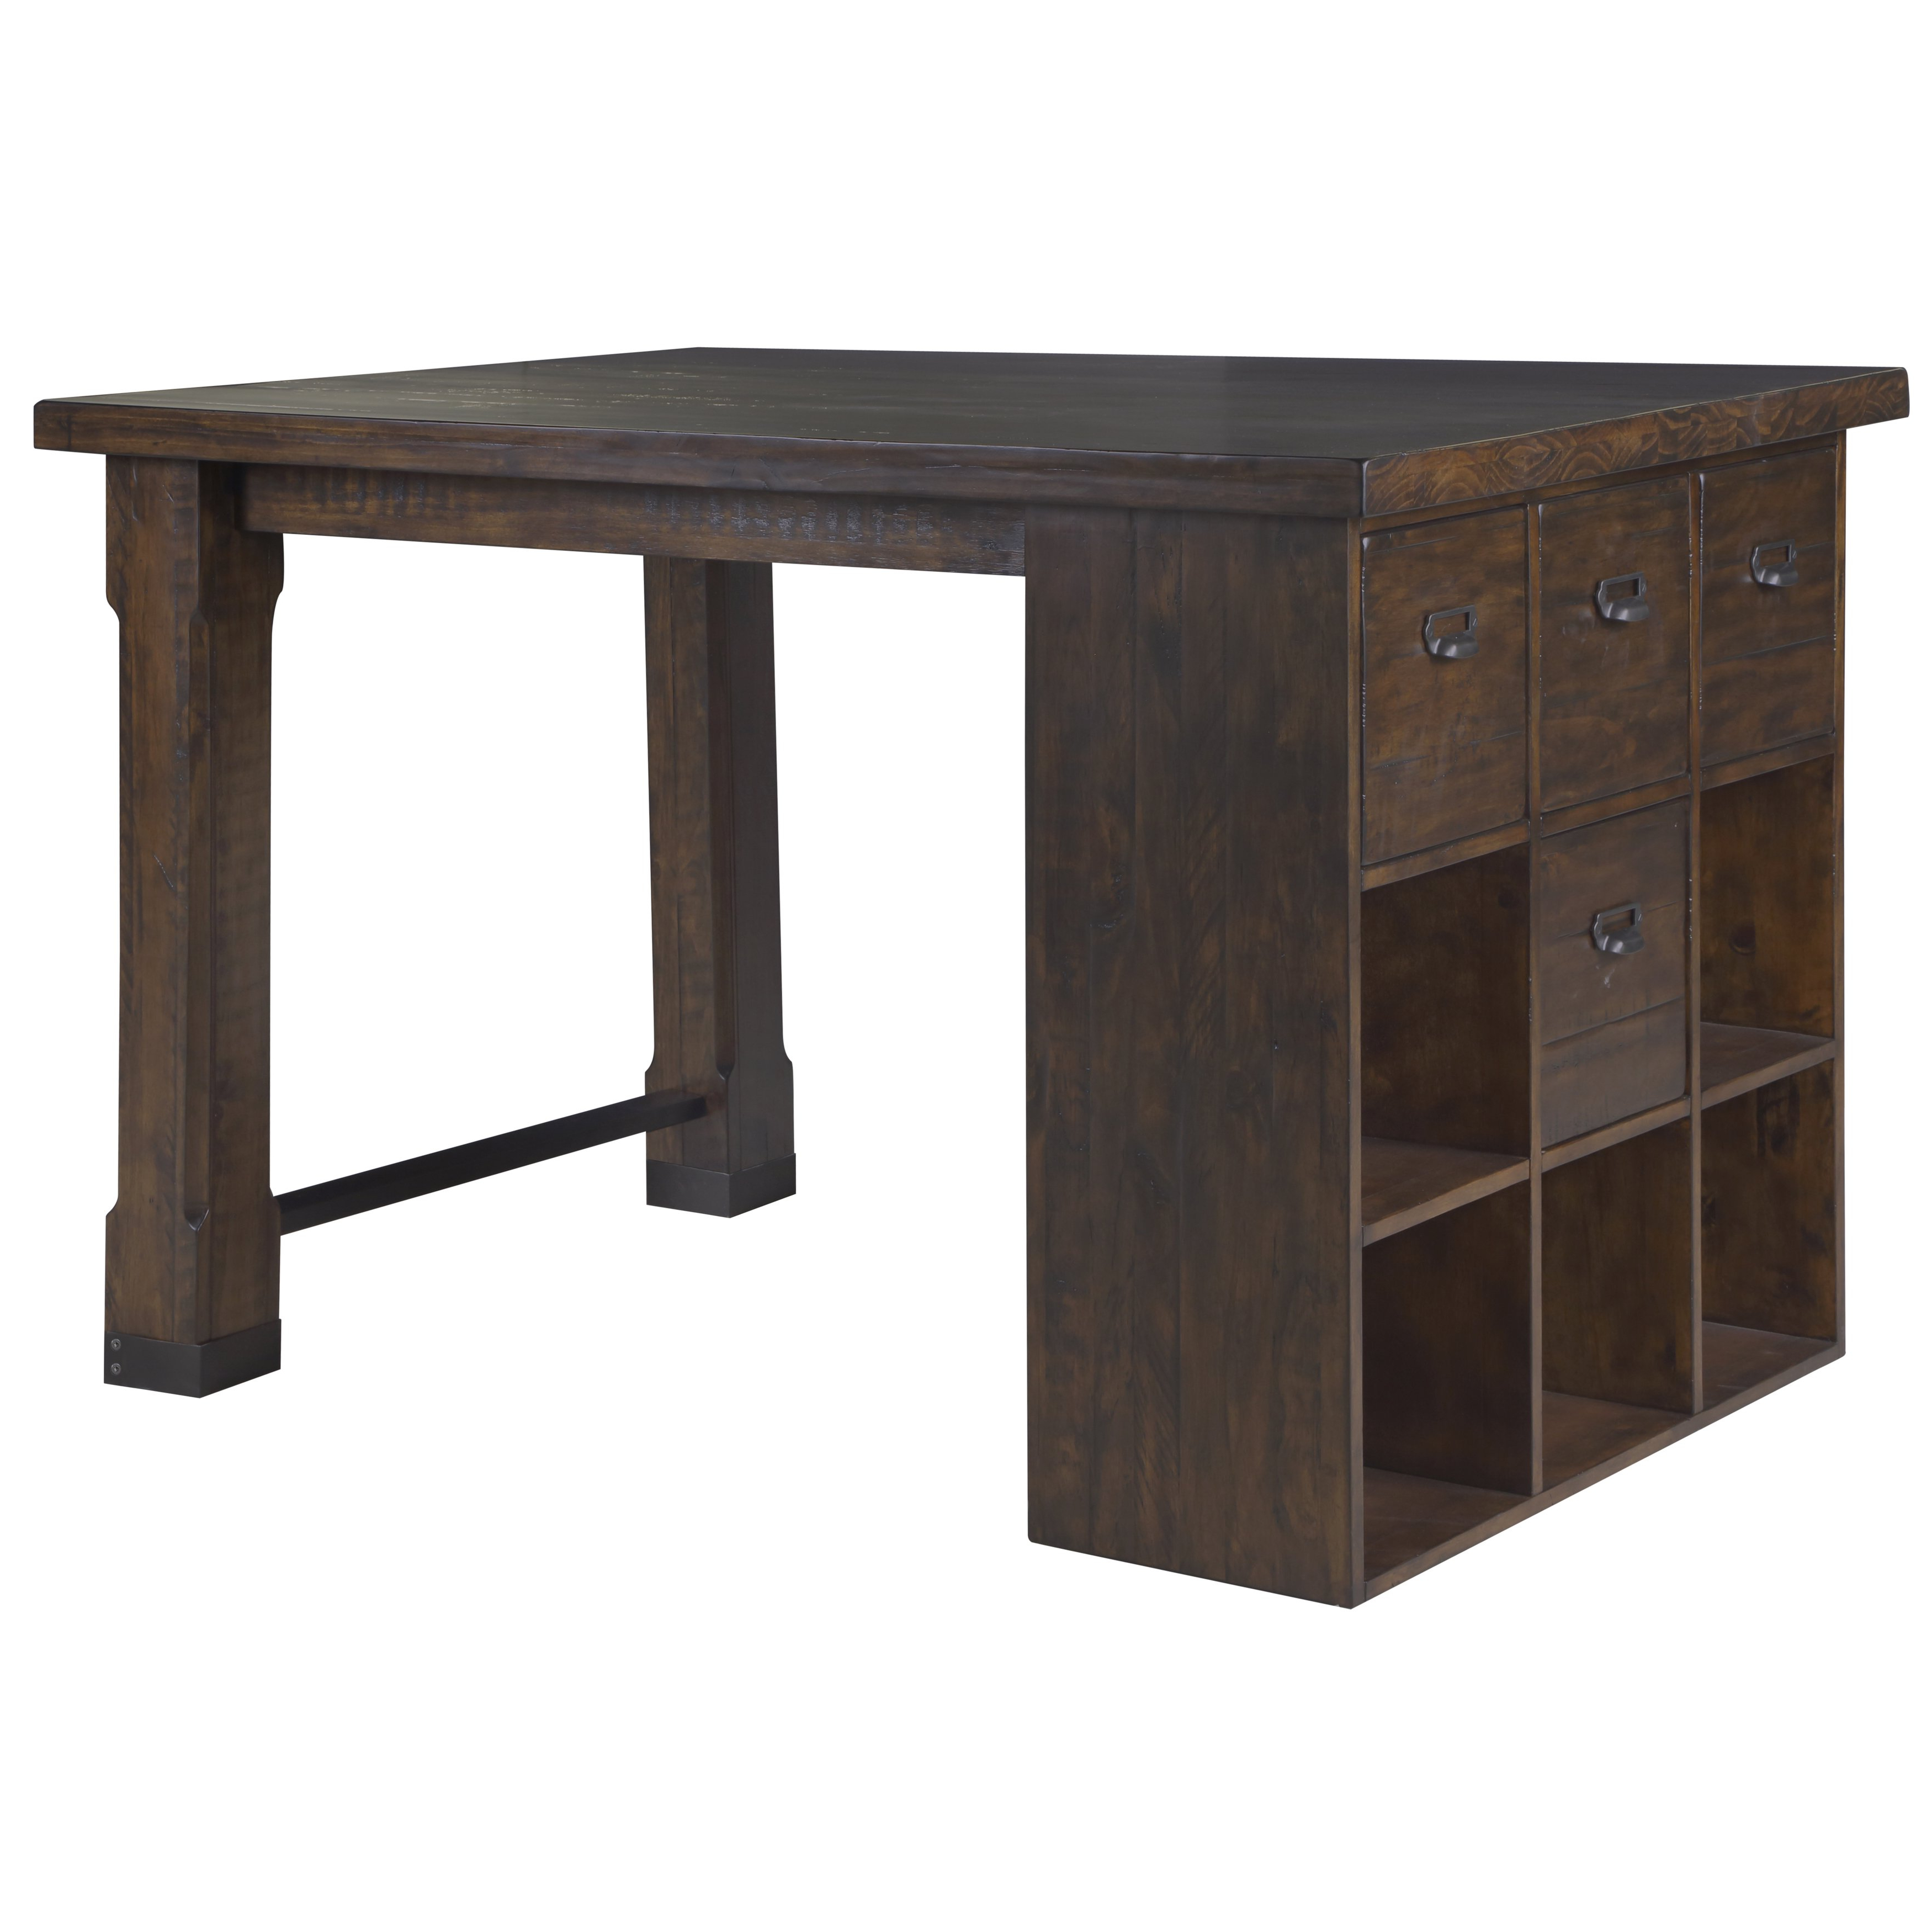 Aged Iron Cube Tables With Latest Shop Silver Orchid Bowers Asymmetrical Counter Height Desk With Cube (Gallery 9 of 20)